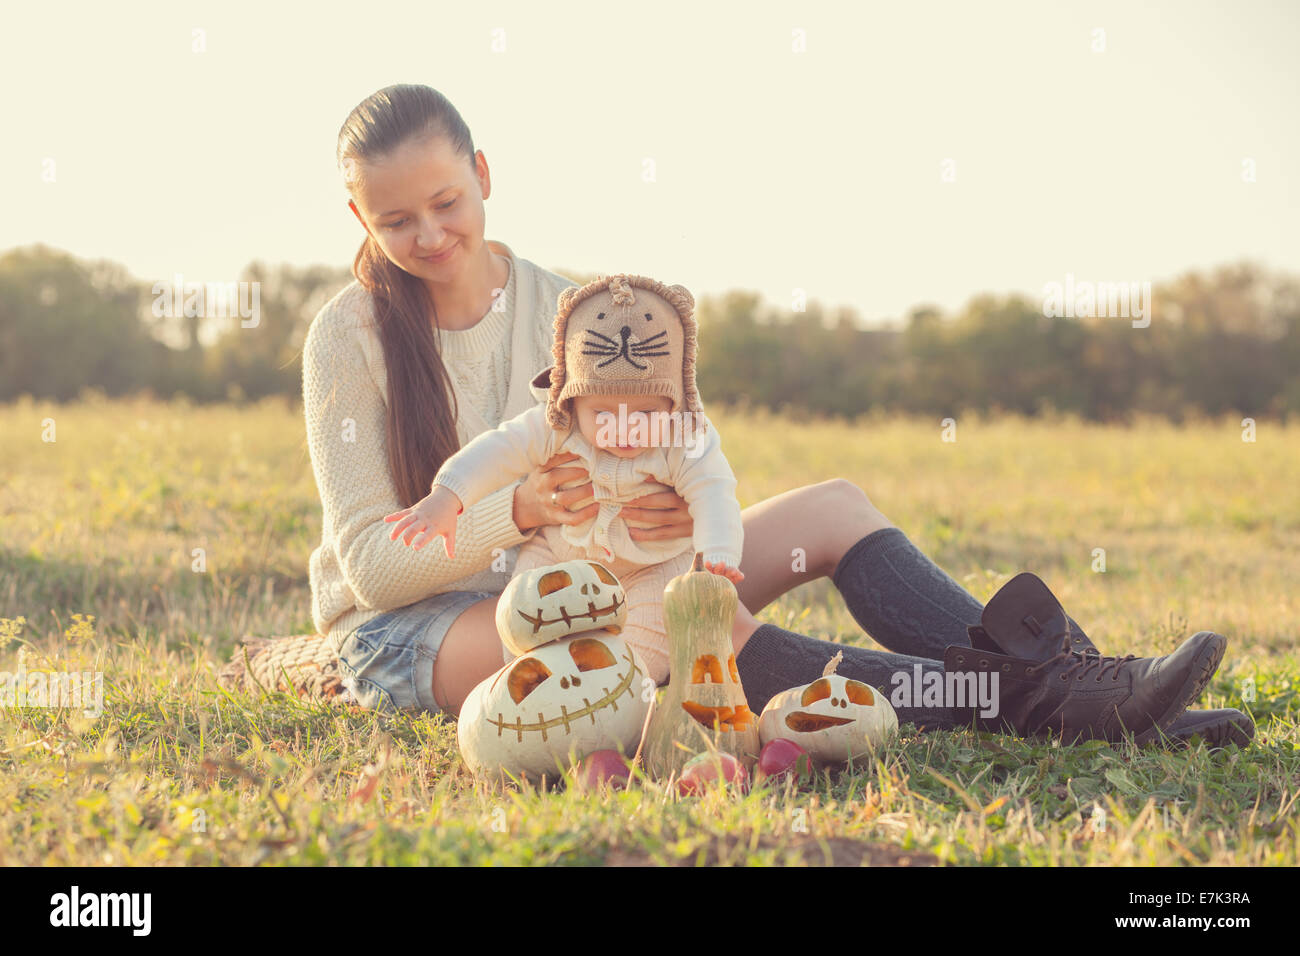 Mother and baby have fun during pumpkin harvest - Stock Image